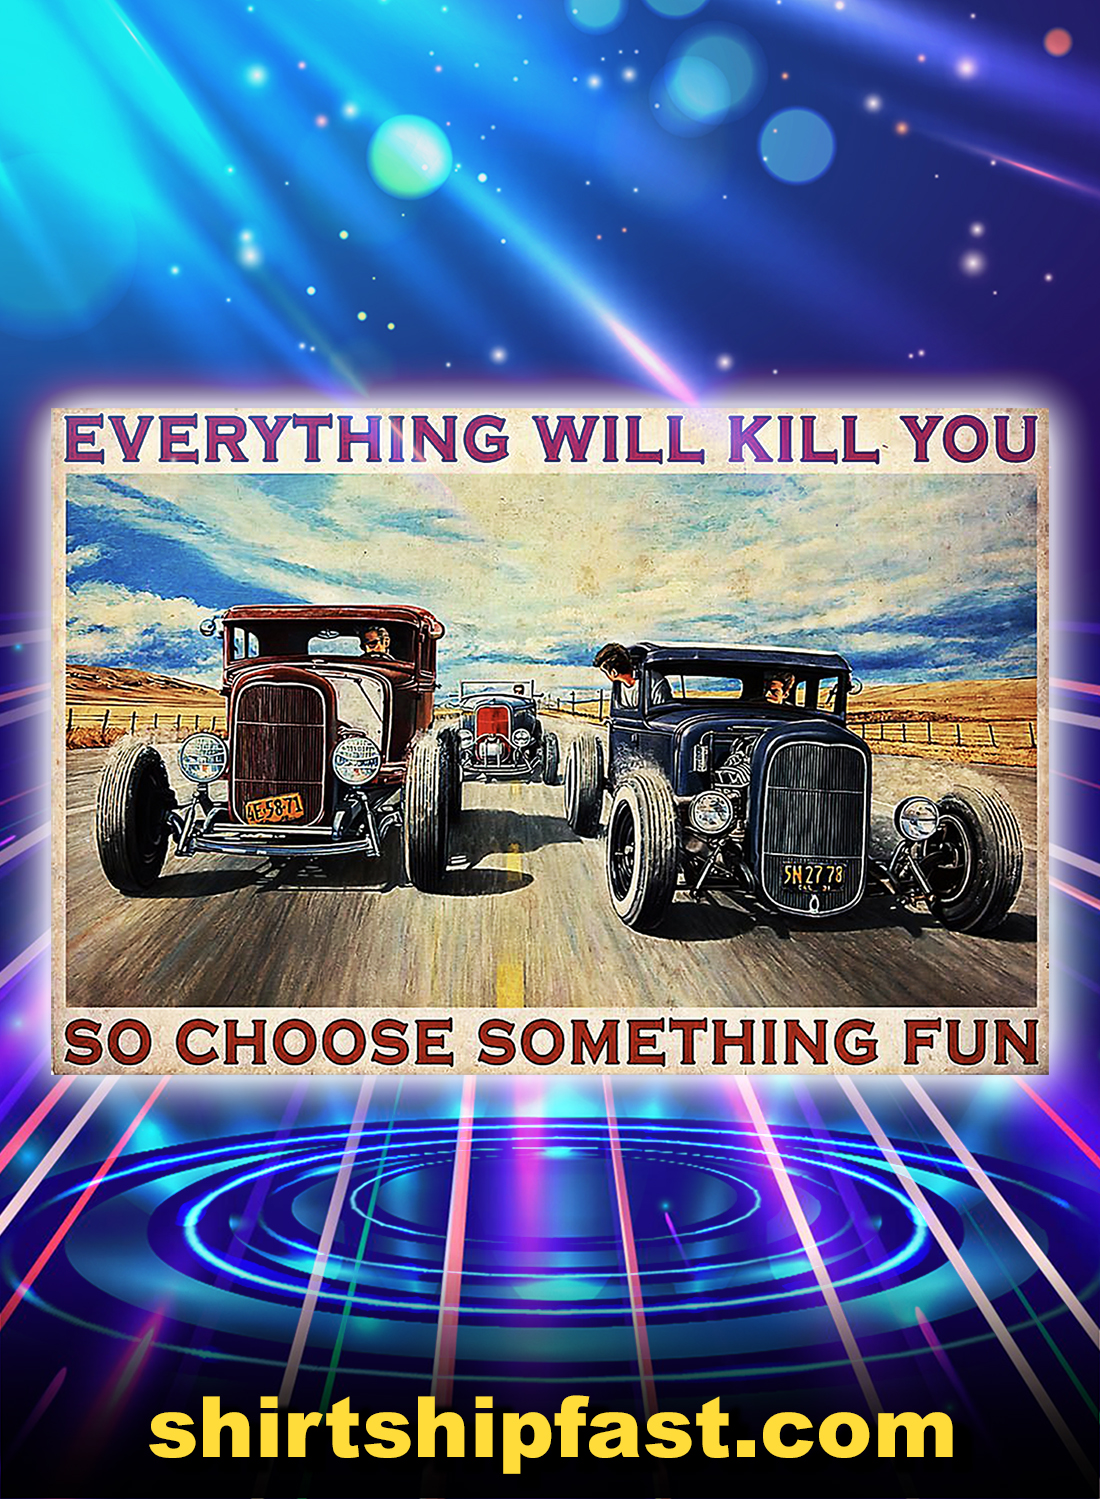 Everything will kill you so choose something fun hot rod poster - A4